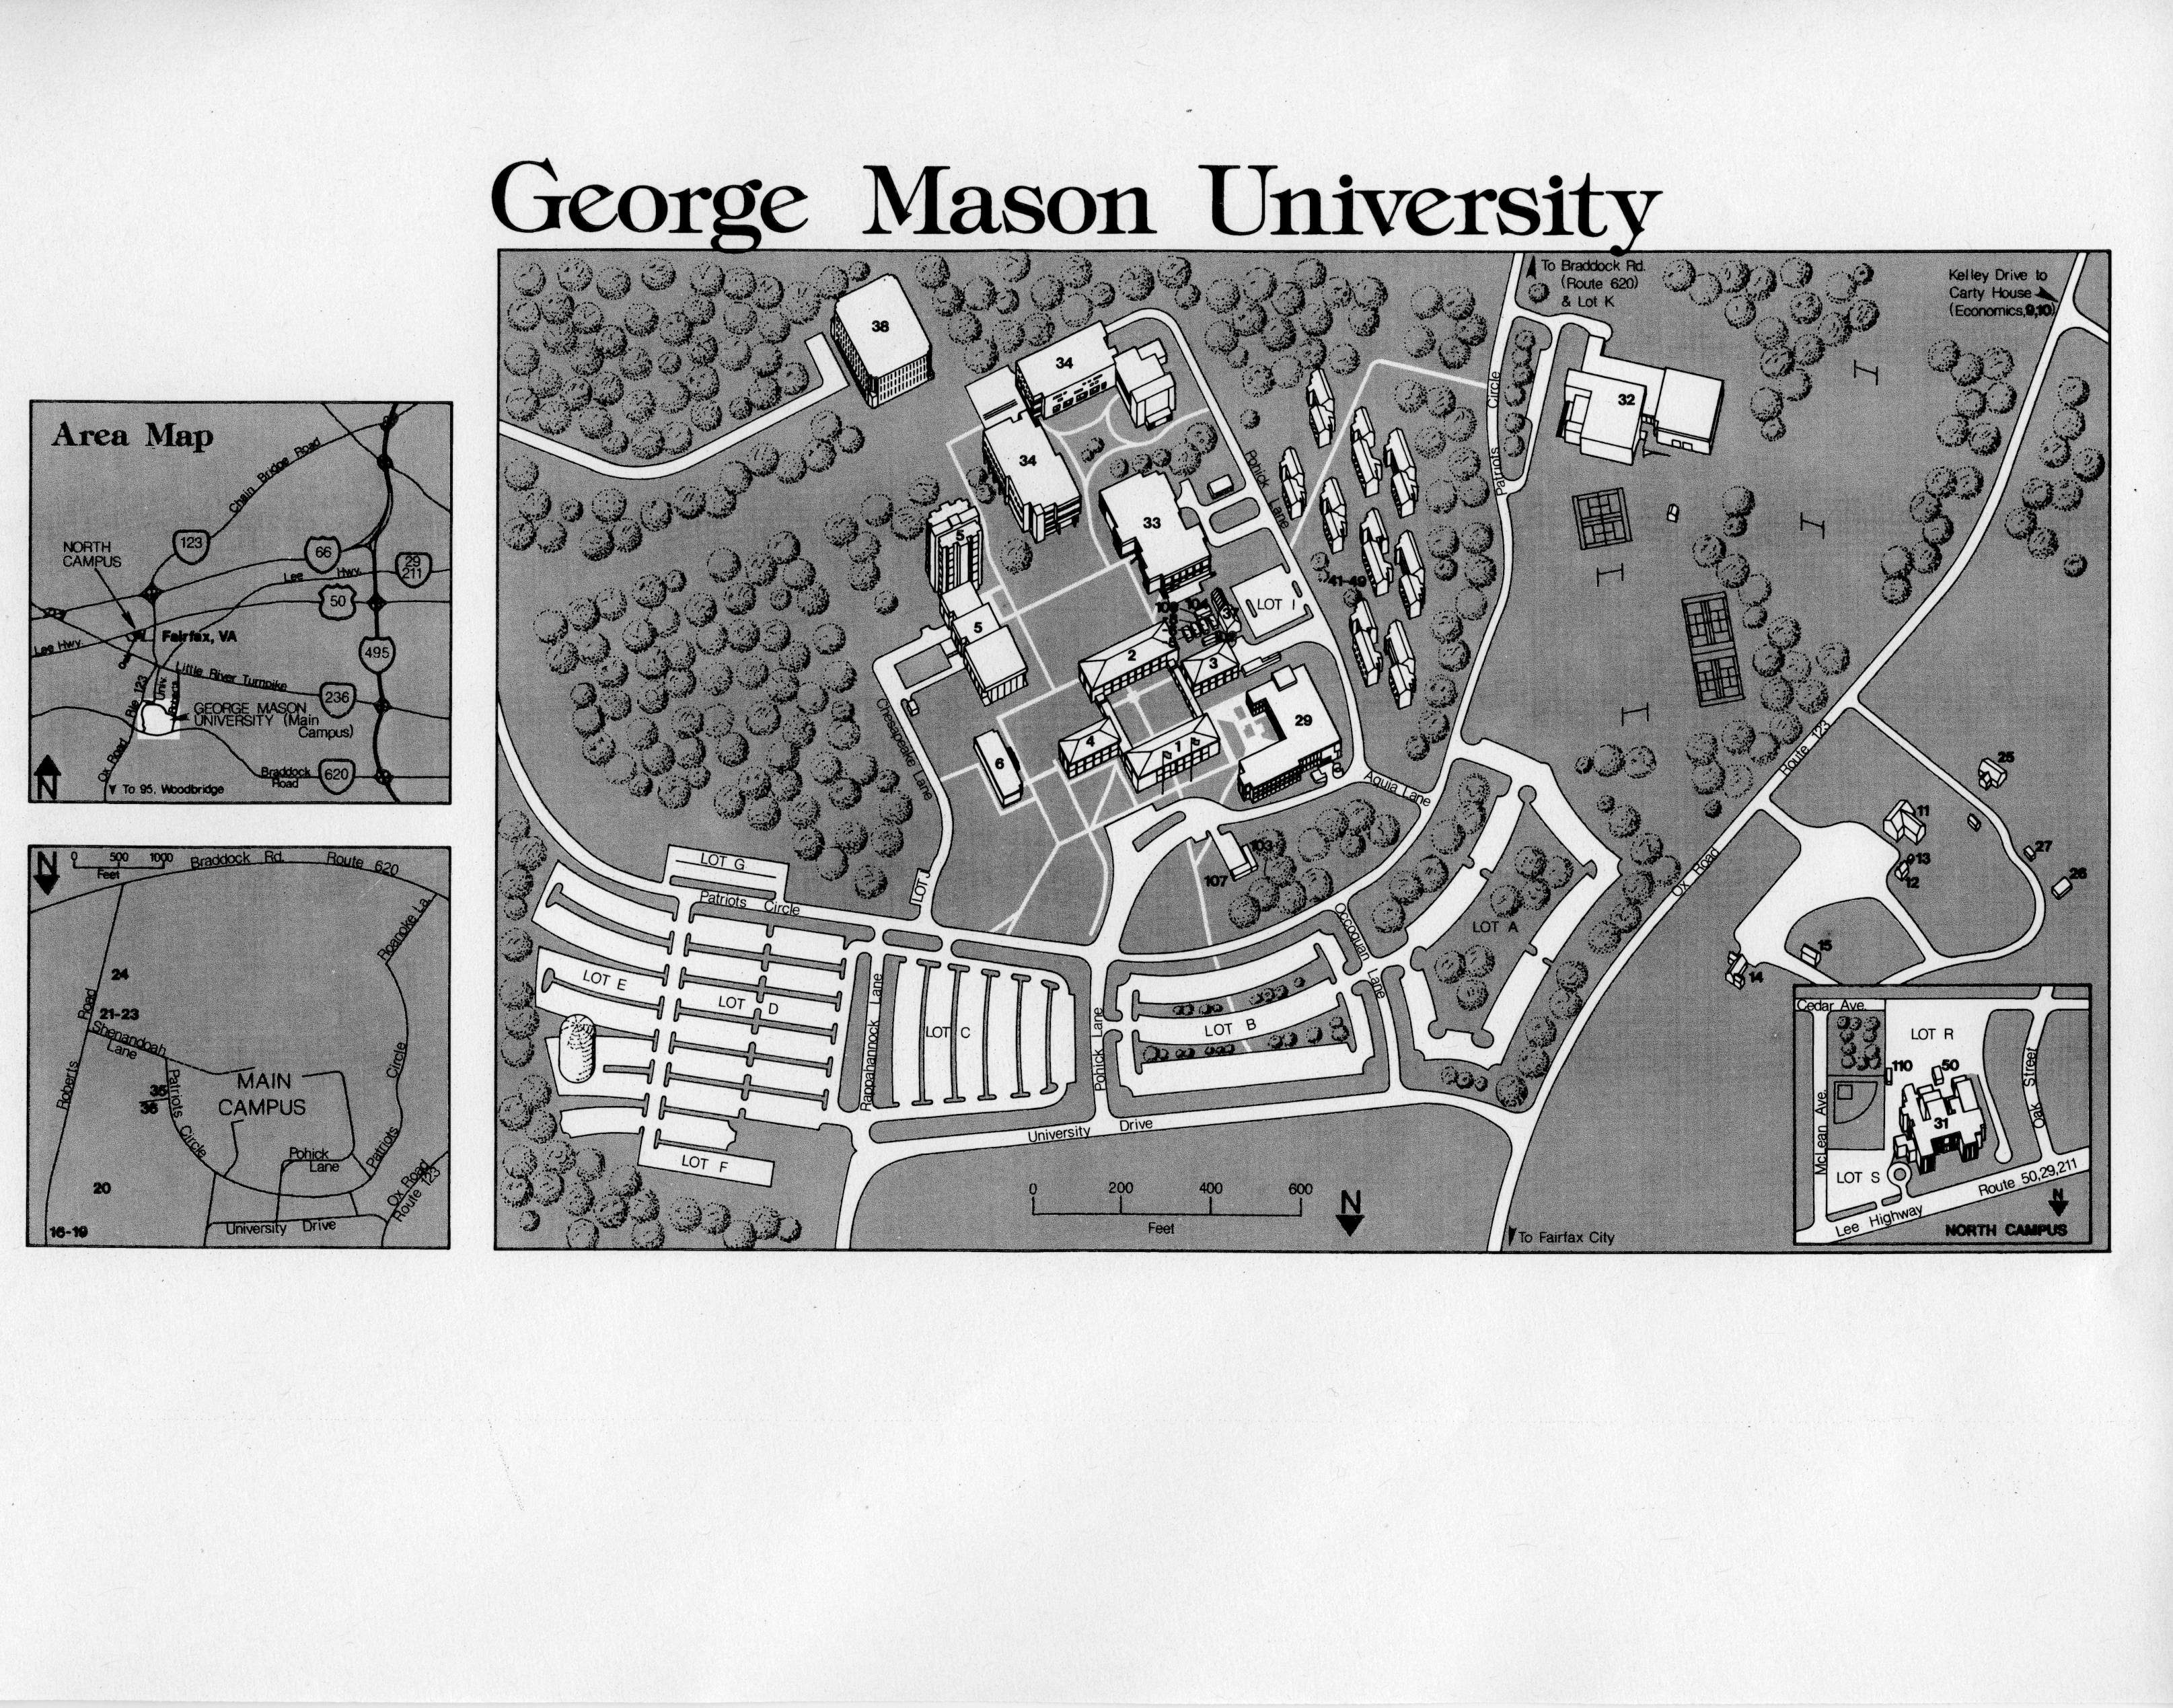 George Mason University Campus Map A History of George Mason University | George Mason University